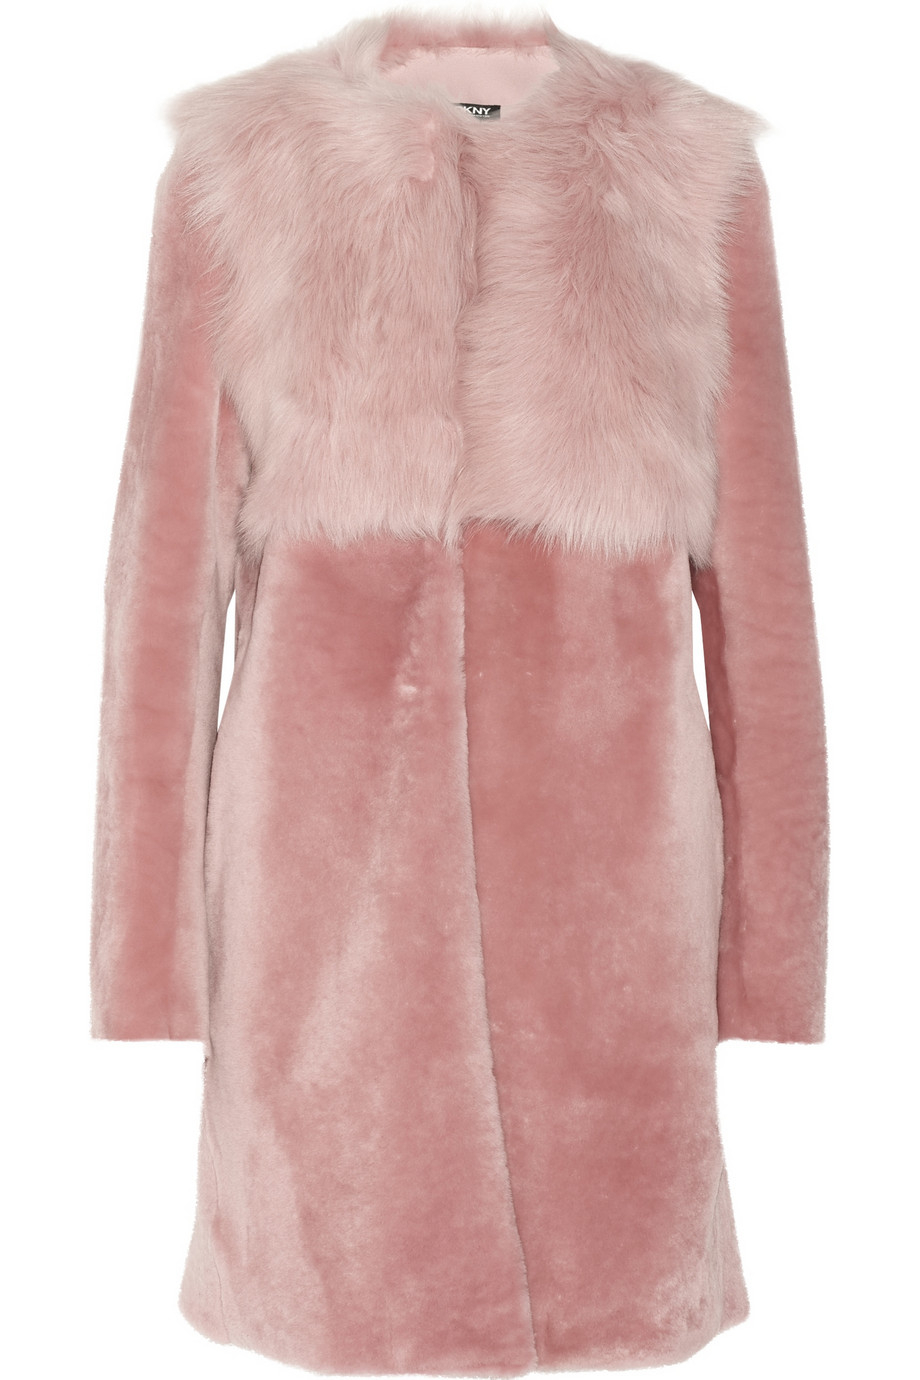 Dkny Shearling Coat in Pink | Lyst